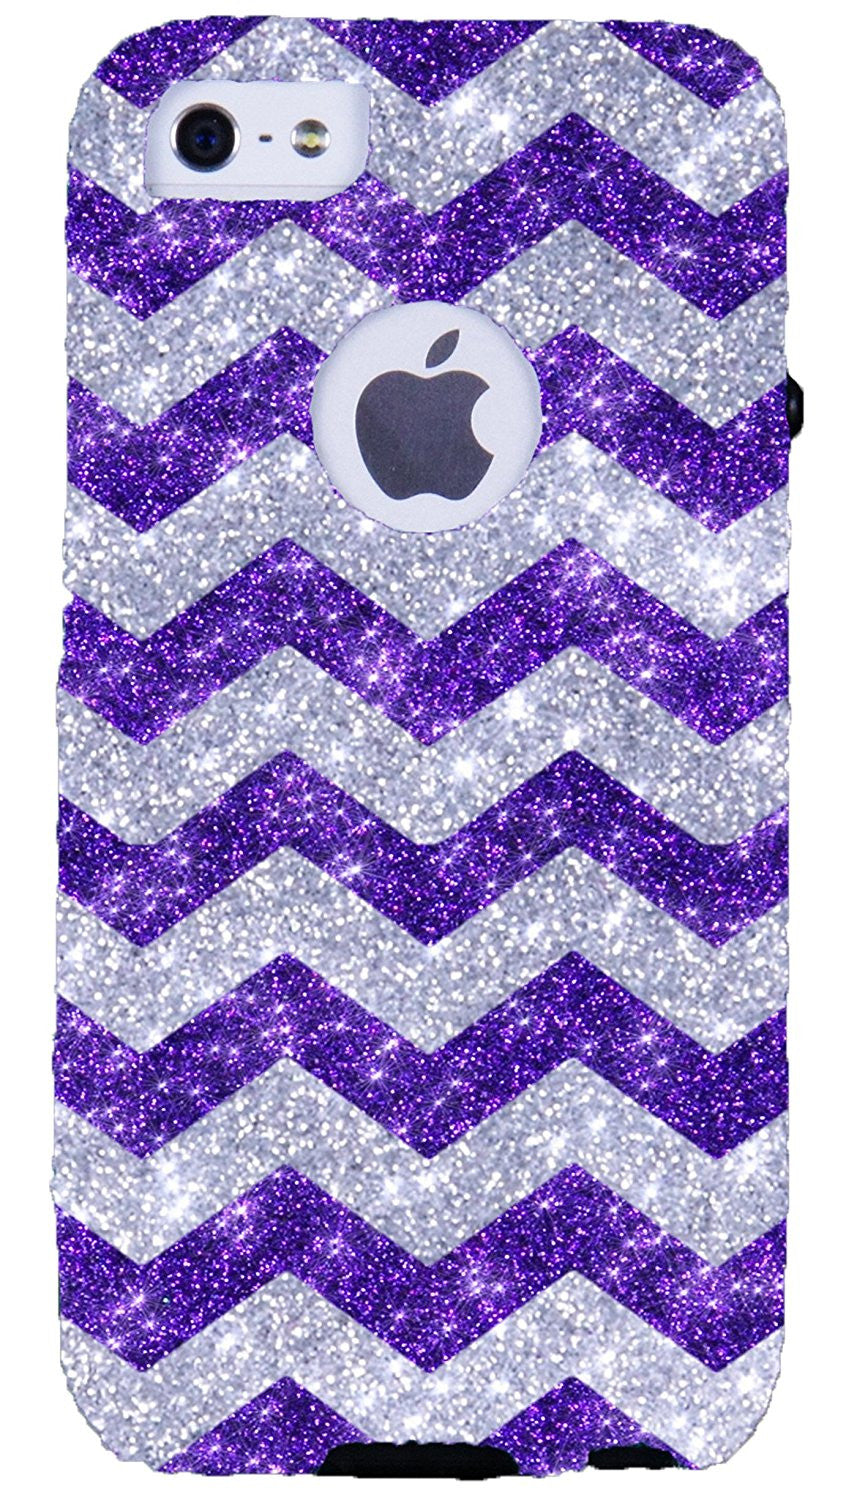 hot sale online 9fe5f bd560 iPhone 5S Case - OtterBox iPhone 5 Commuter Series - Retail Packaging -  Glitter Silver Small Chevron Purple/Black